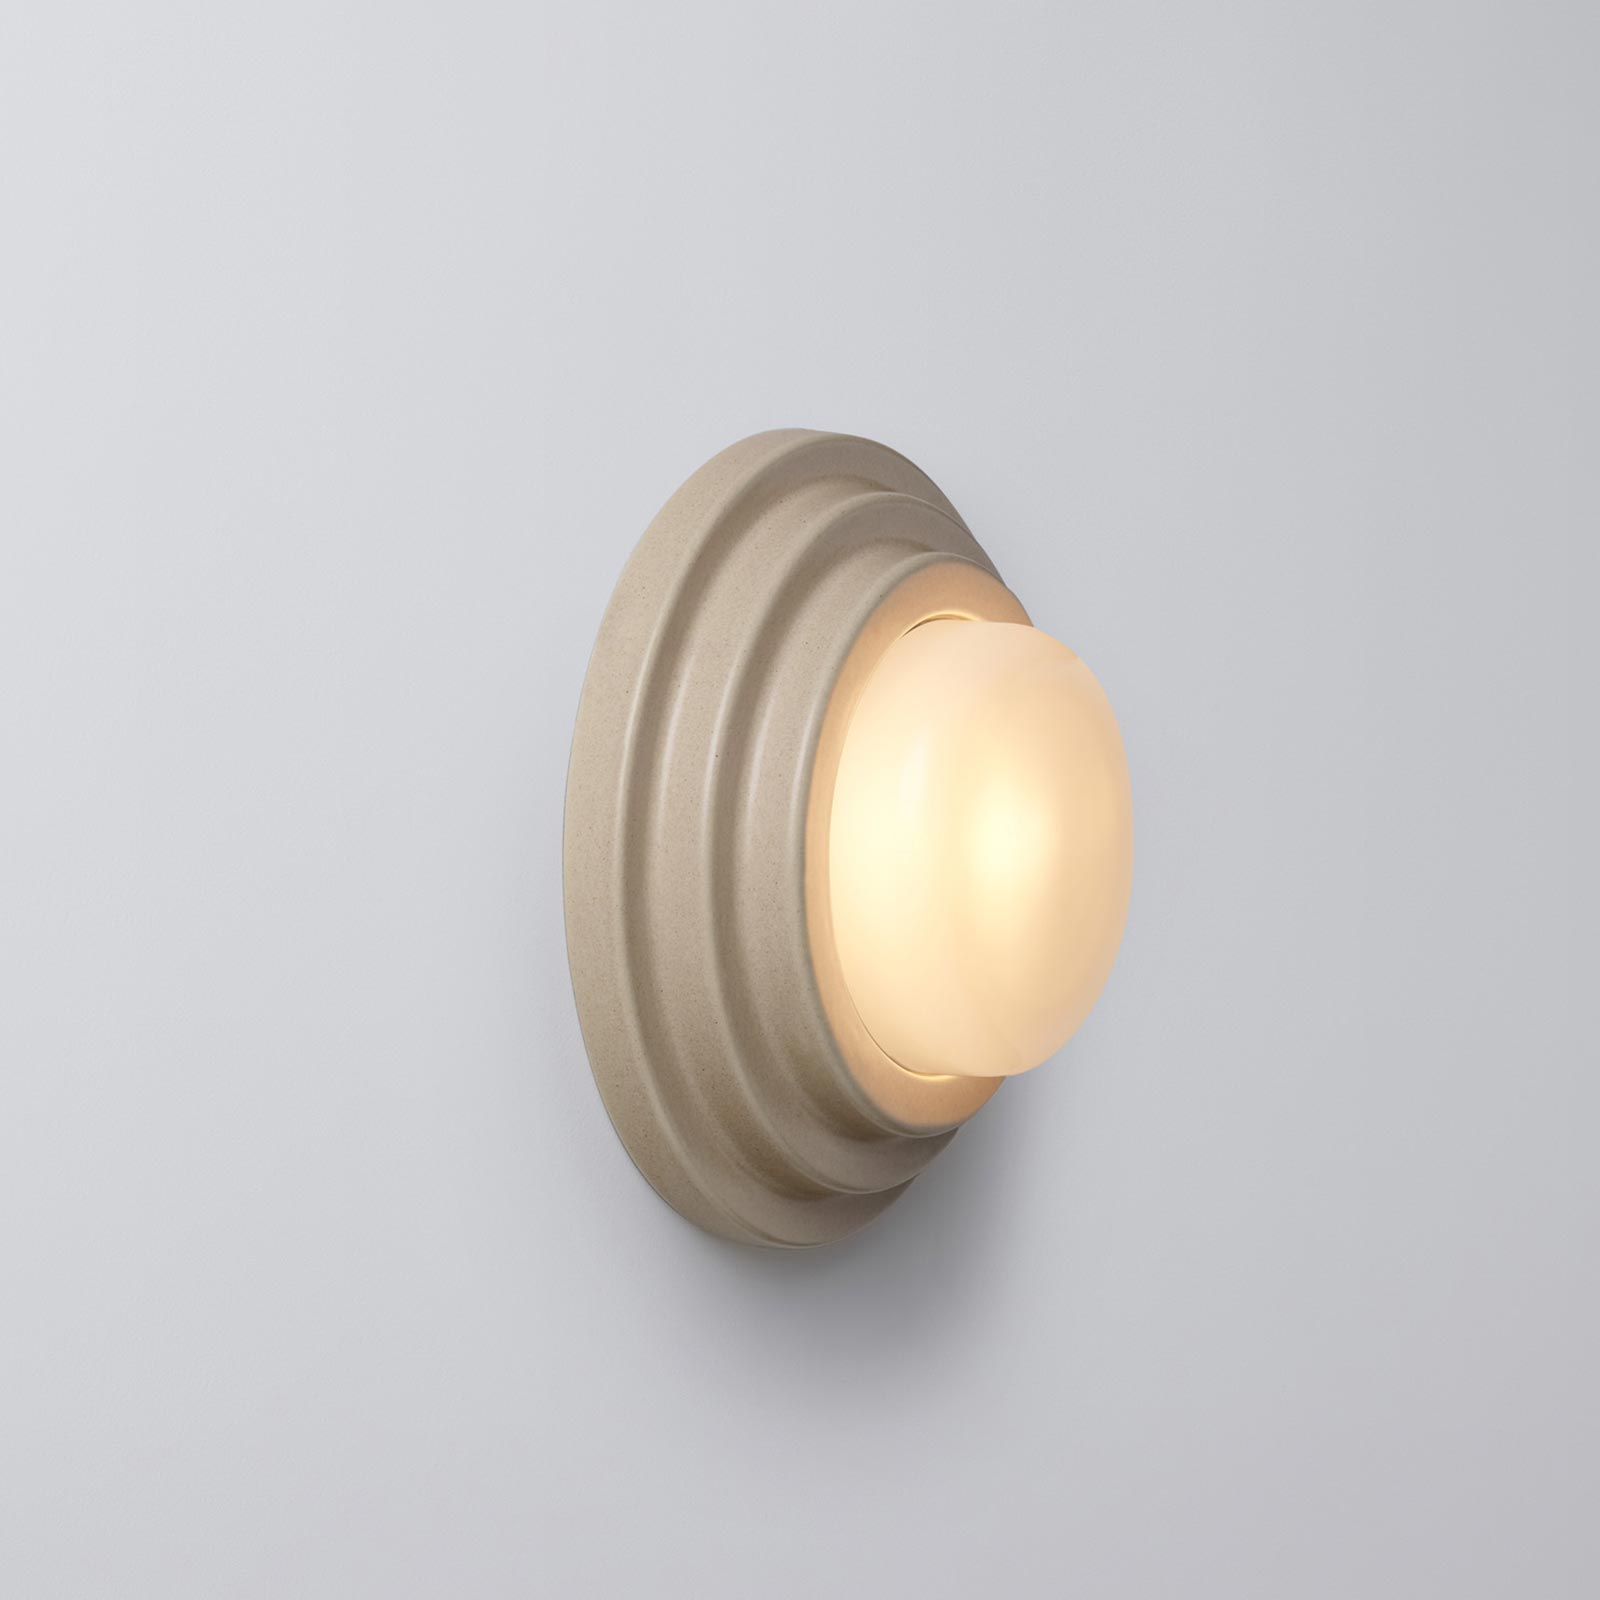 Honey Wall Sconce By Coco Flip Hero 5